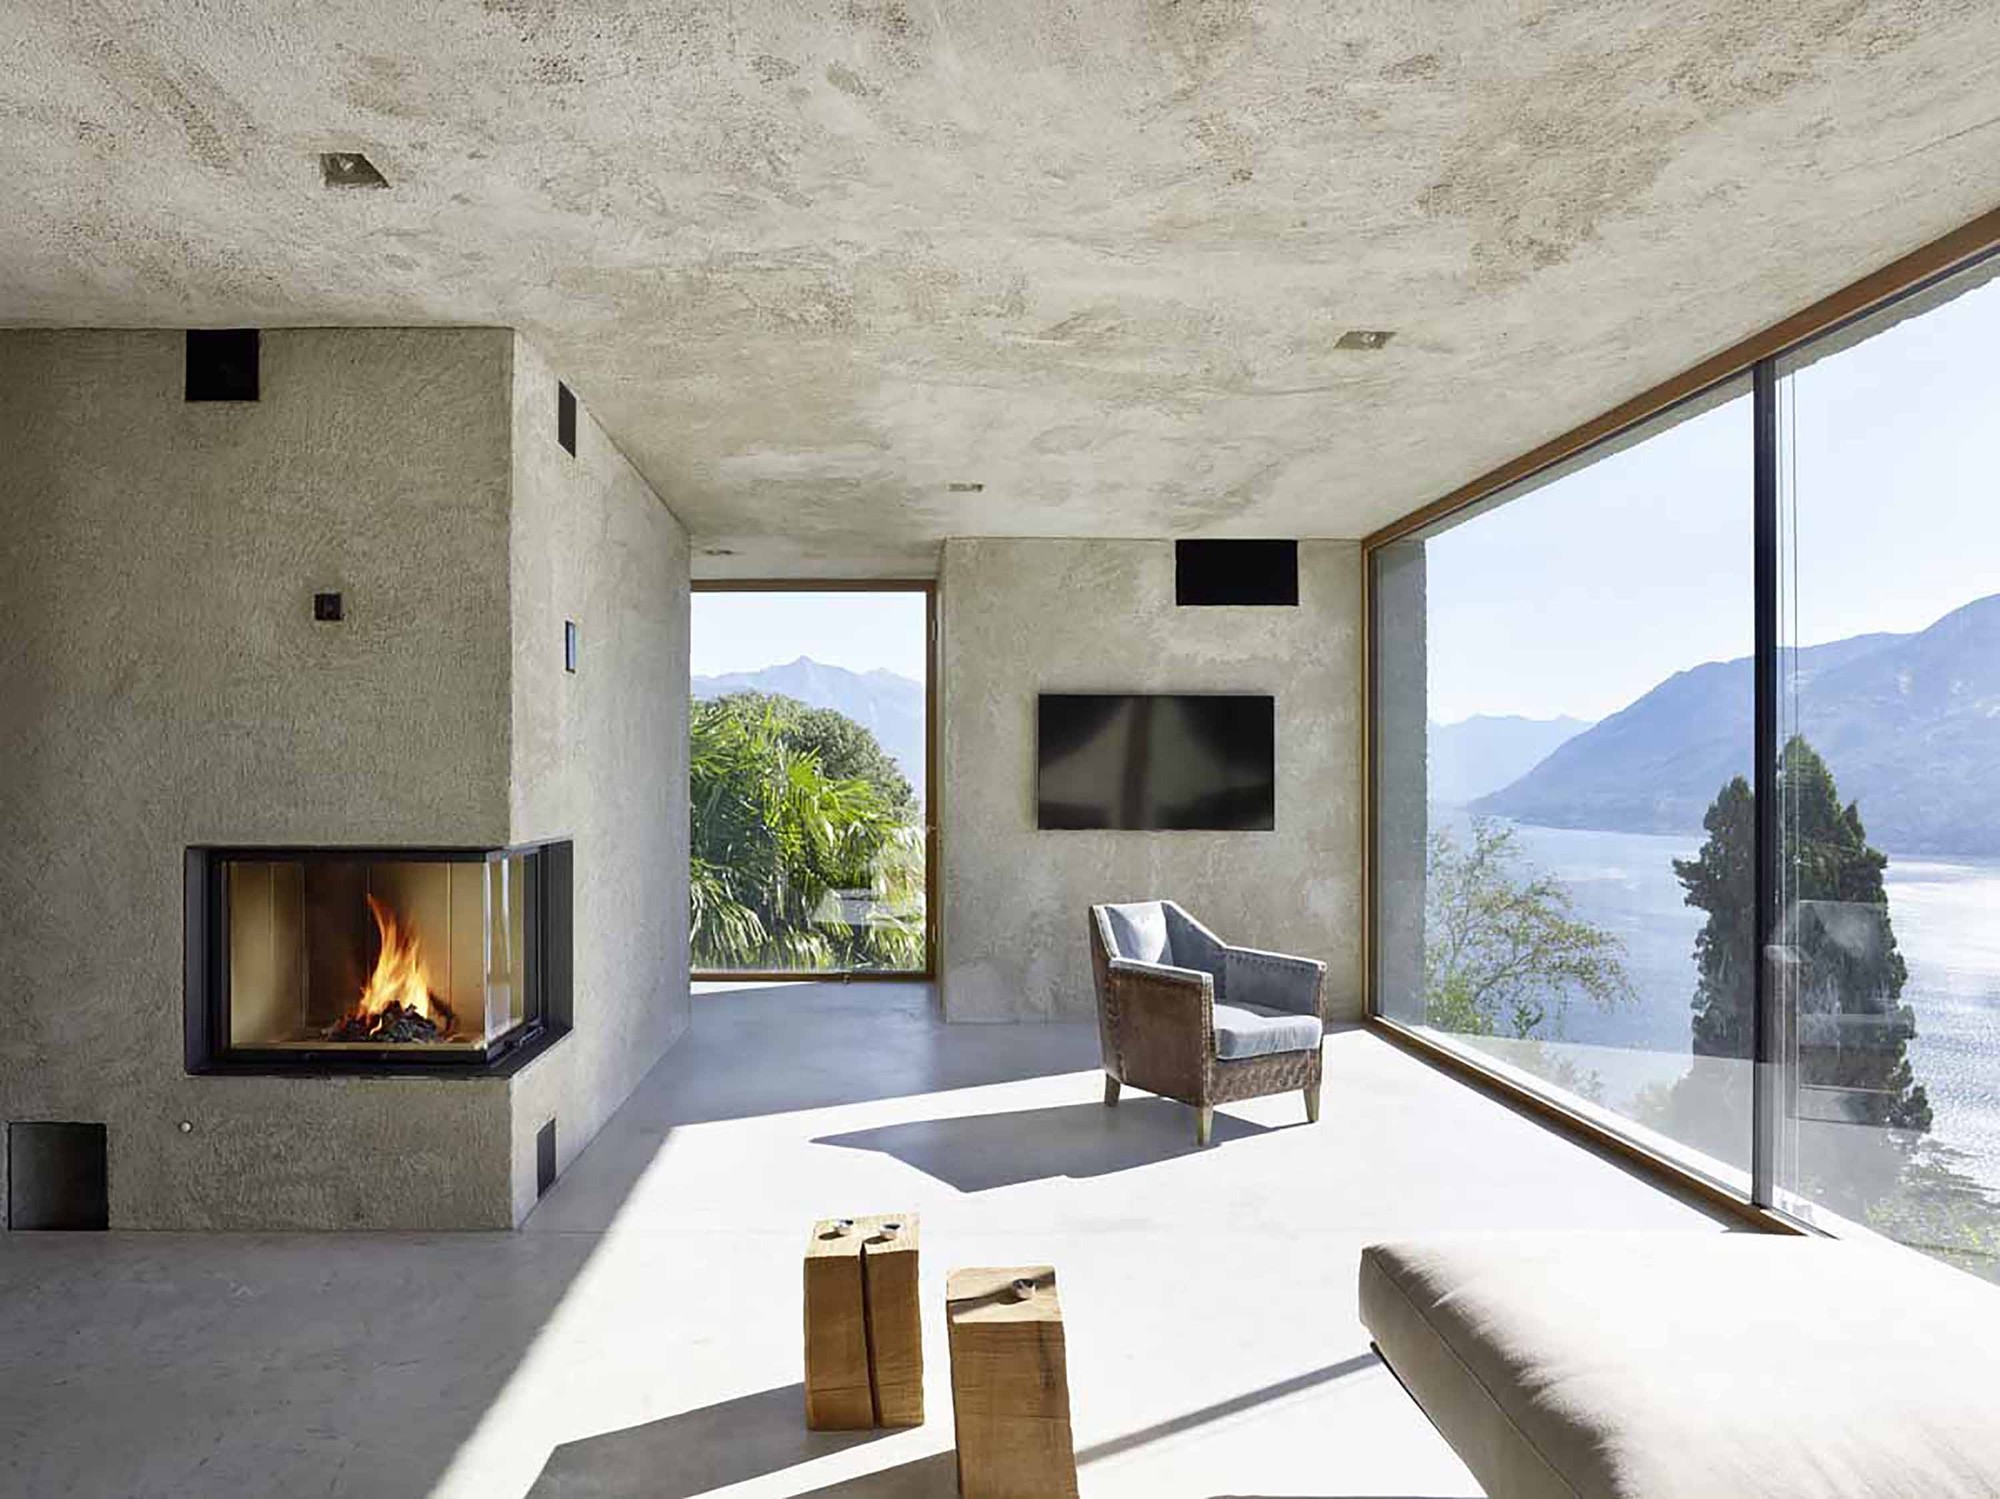 House in Brissago  / Wespi de Meuron Romeo architects, © Hannes Henz